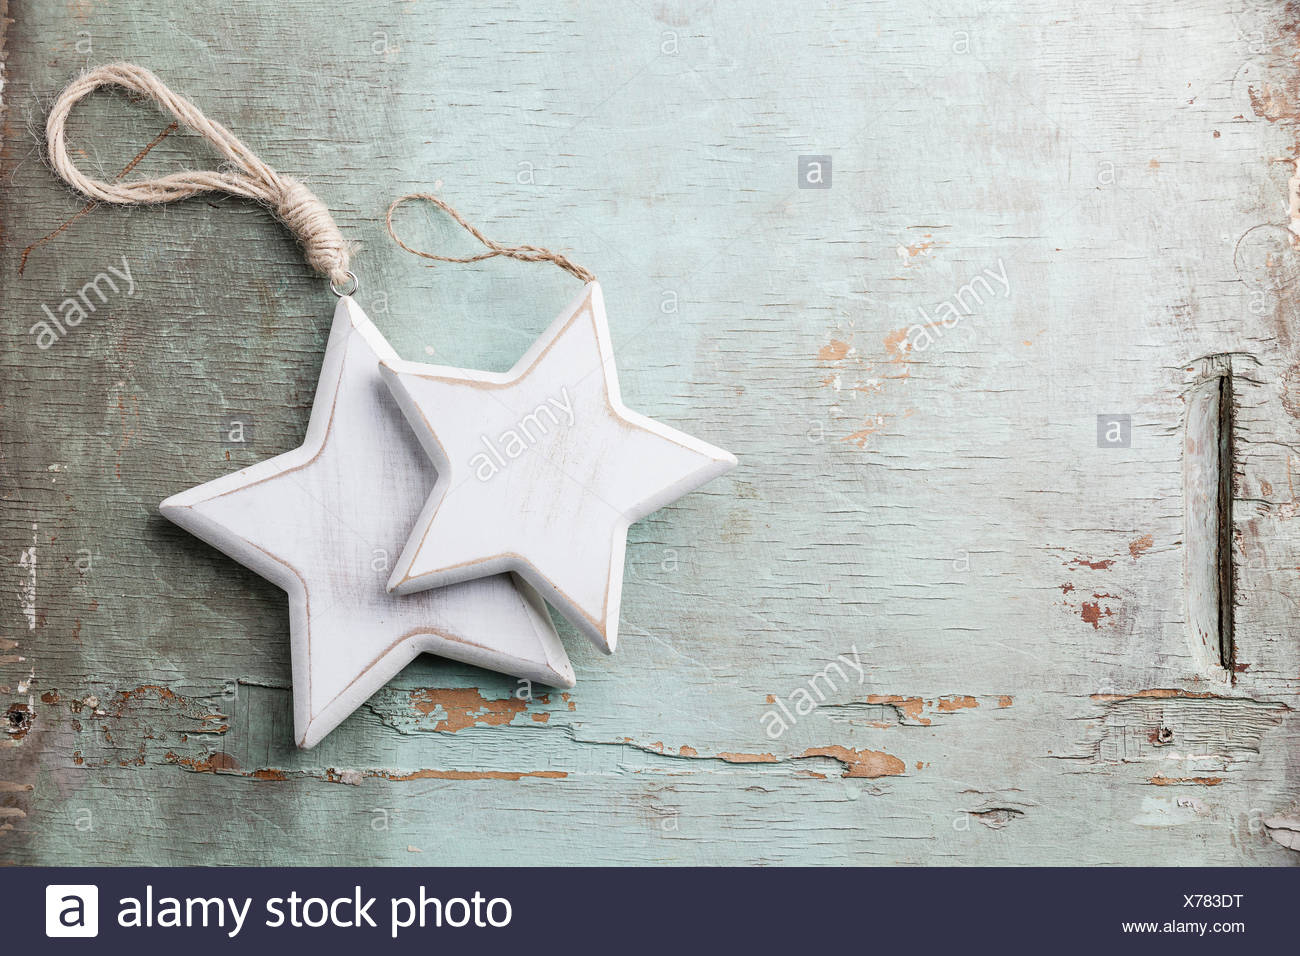 Wooden Christmas decorations stars on blue textured background - Stock Image